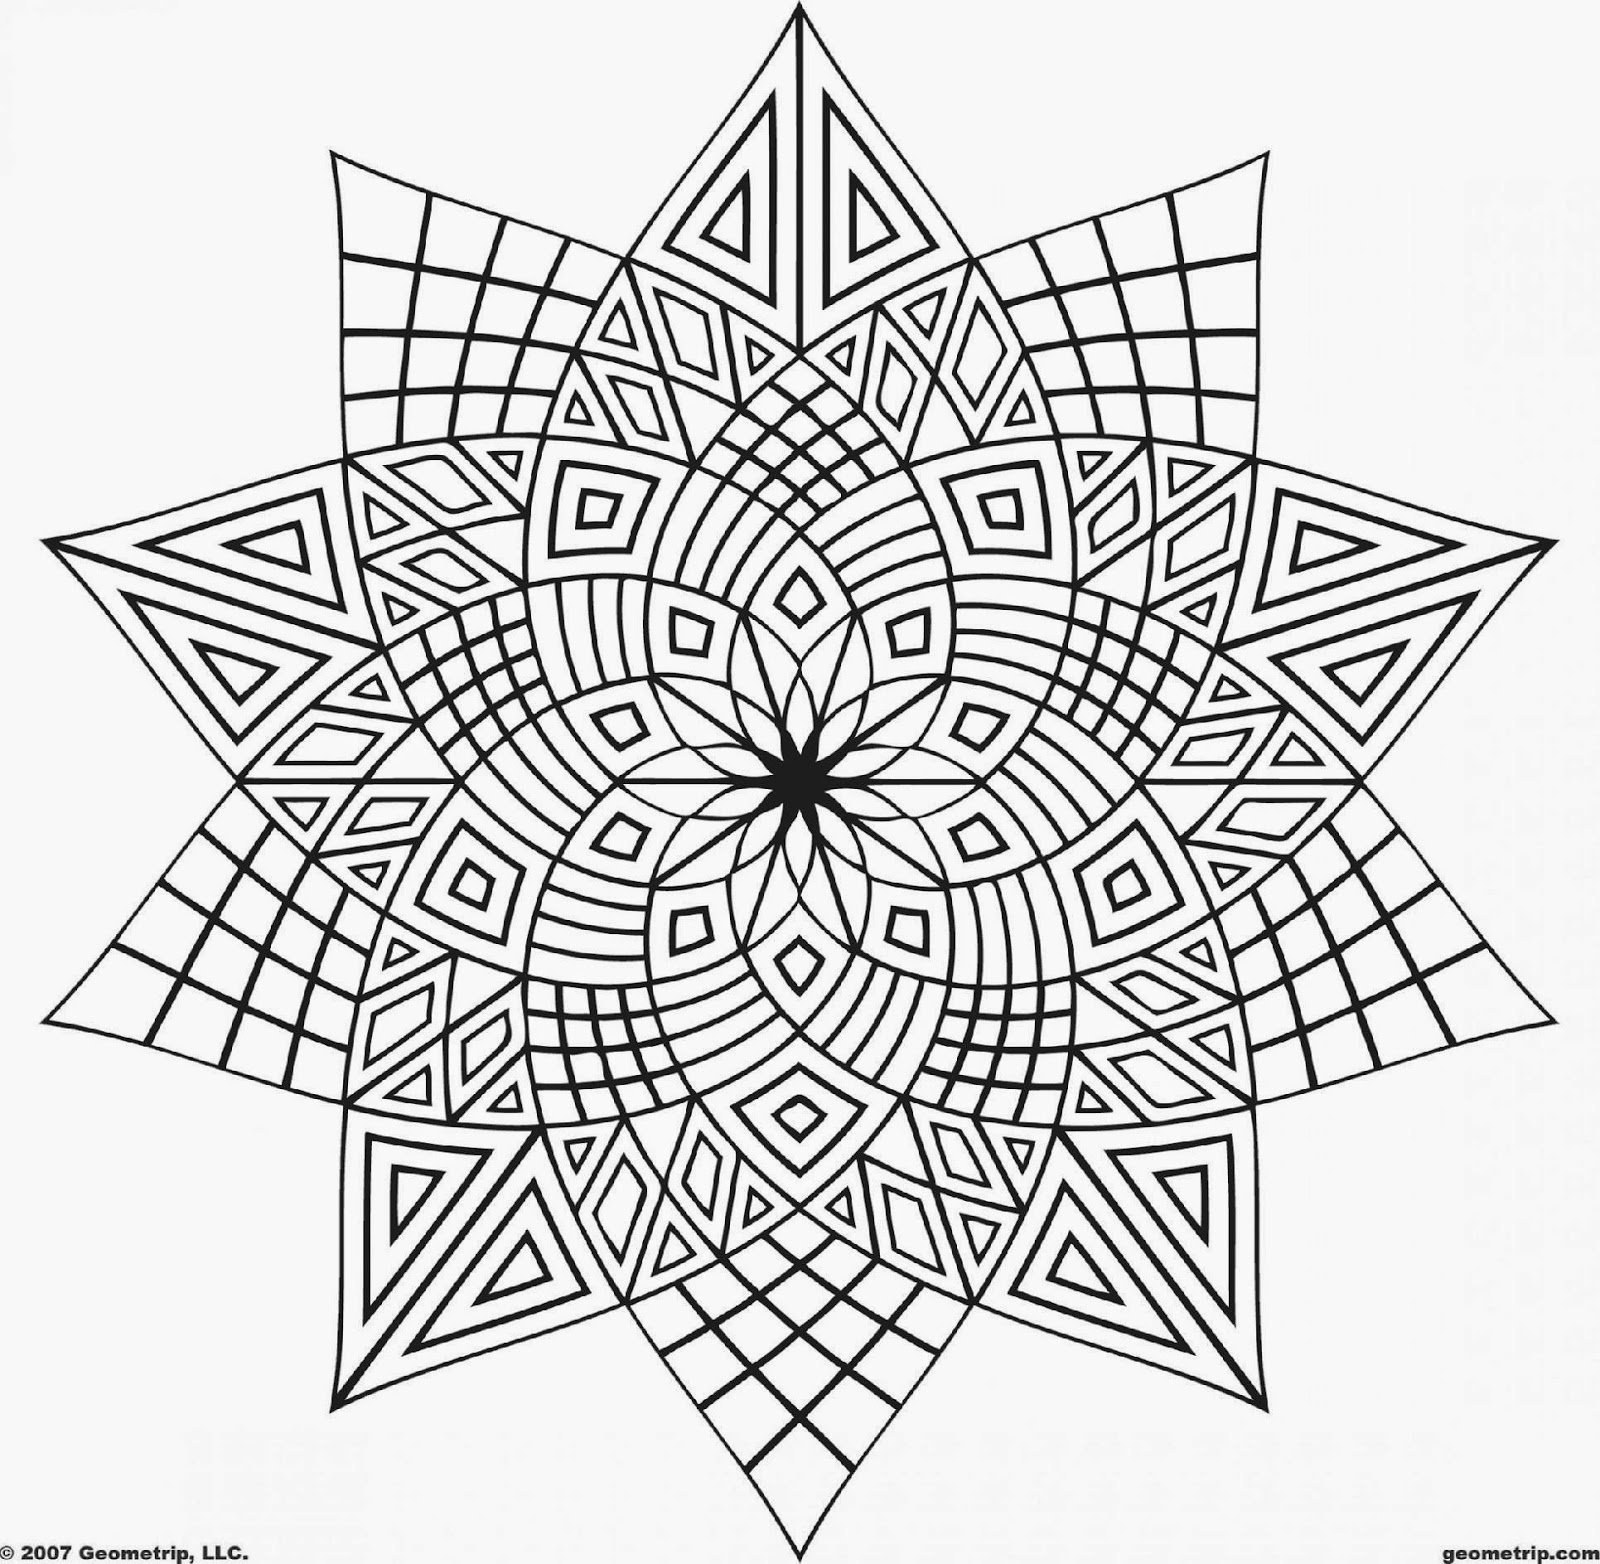 Diwali crafts for children on pinterest diwali diwali for Coloring pages cool